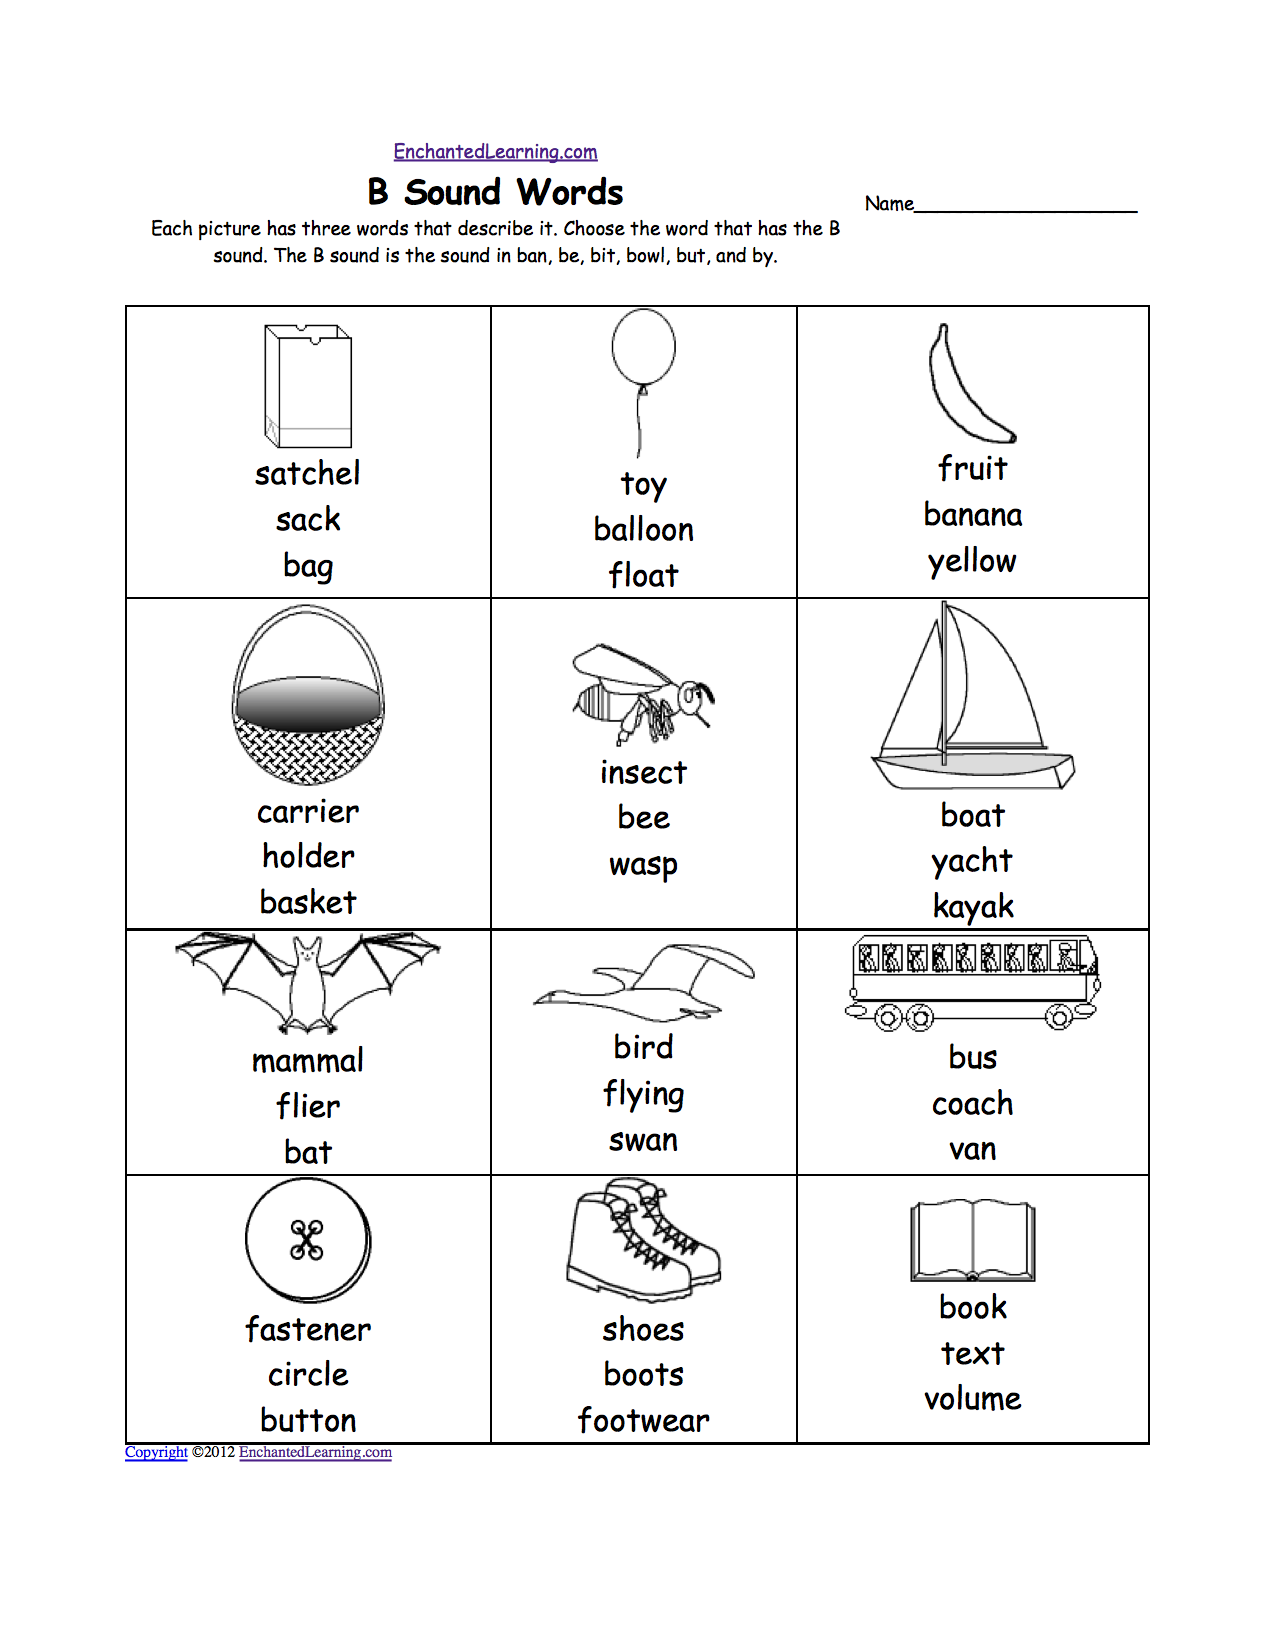 Aldiablosus  Wonderful Phonics Worksheets Multiple Choice Worksheets To Print  With Lovable Quotbquot Sound Phonics Worksheet Multiple Choice Each Picture Has Three Words That Describe It Choose The Word That Has A Quotbquot Sound The Quotbquot Sound Is The Sound  With Beauteous Free Excel Worksheets Download Also Halloween Reading Worksheet In Addition Adding Ing And Ed To Words Worksheets And Fusion And Fission Worksheet As Well As Where Animals Live Worksheet Additionally Money Making Change Worksheets From Enchantedlearningcom With Aldiablosus  Lovable Phonics Worksheets Multiple Choice Worksheets To Print  With Beauteous Quotbquot Sound Phonics Worksheet Multiple Choice Each Picture Has Three Words That Describe It Choose The Word That Has A Quotbquot Sound The Quotbquot Sound Is The Sound  And Wonderful Free Excel Worksheets Download Also Halloween Reading Worksheet In Addition Adding Ing And Ed To Words Worksheets From Enchantedlearningcom